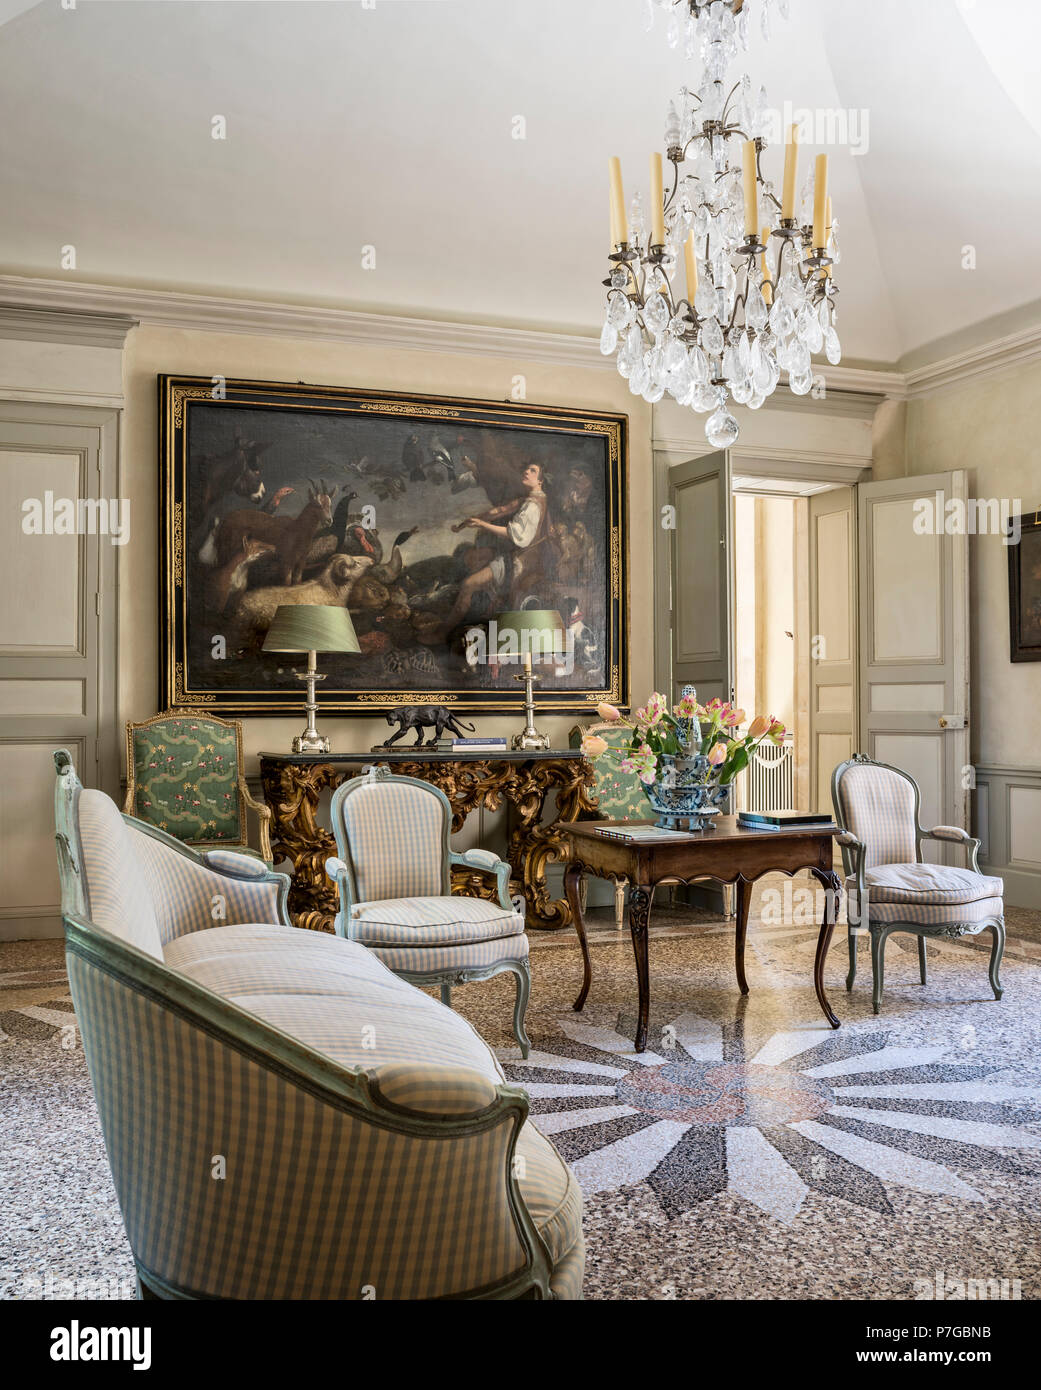 Gingham Chairs And Sofa With Large Artwork In Mosaic Tiled Interior Of 18th  Century Chateaux, St Remy De Provence